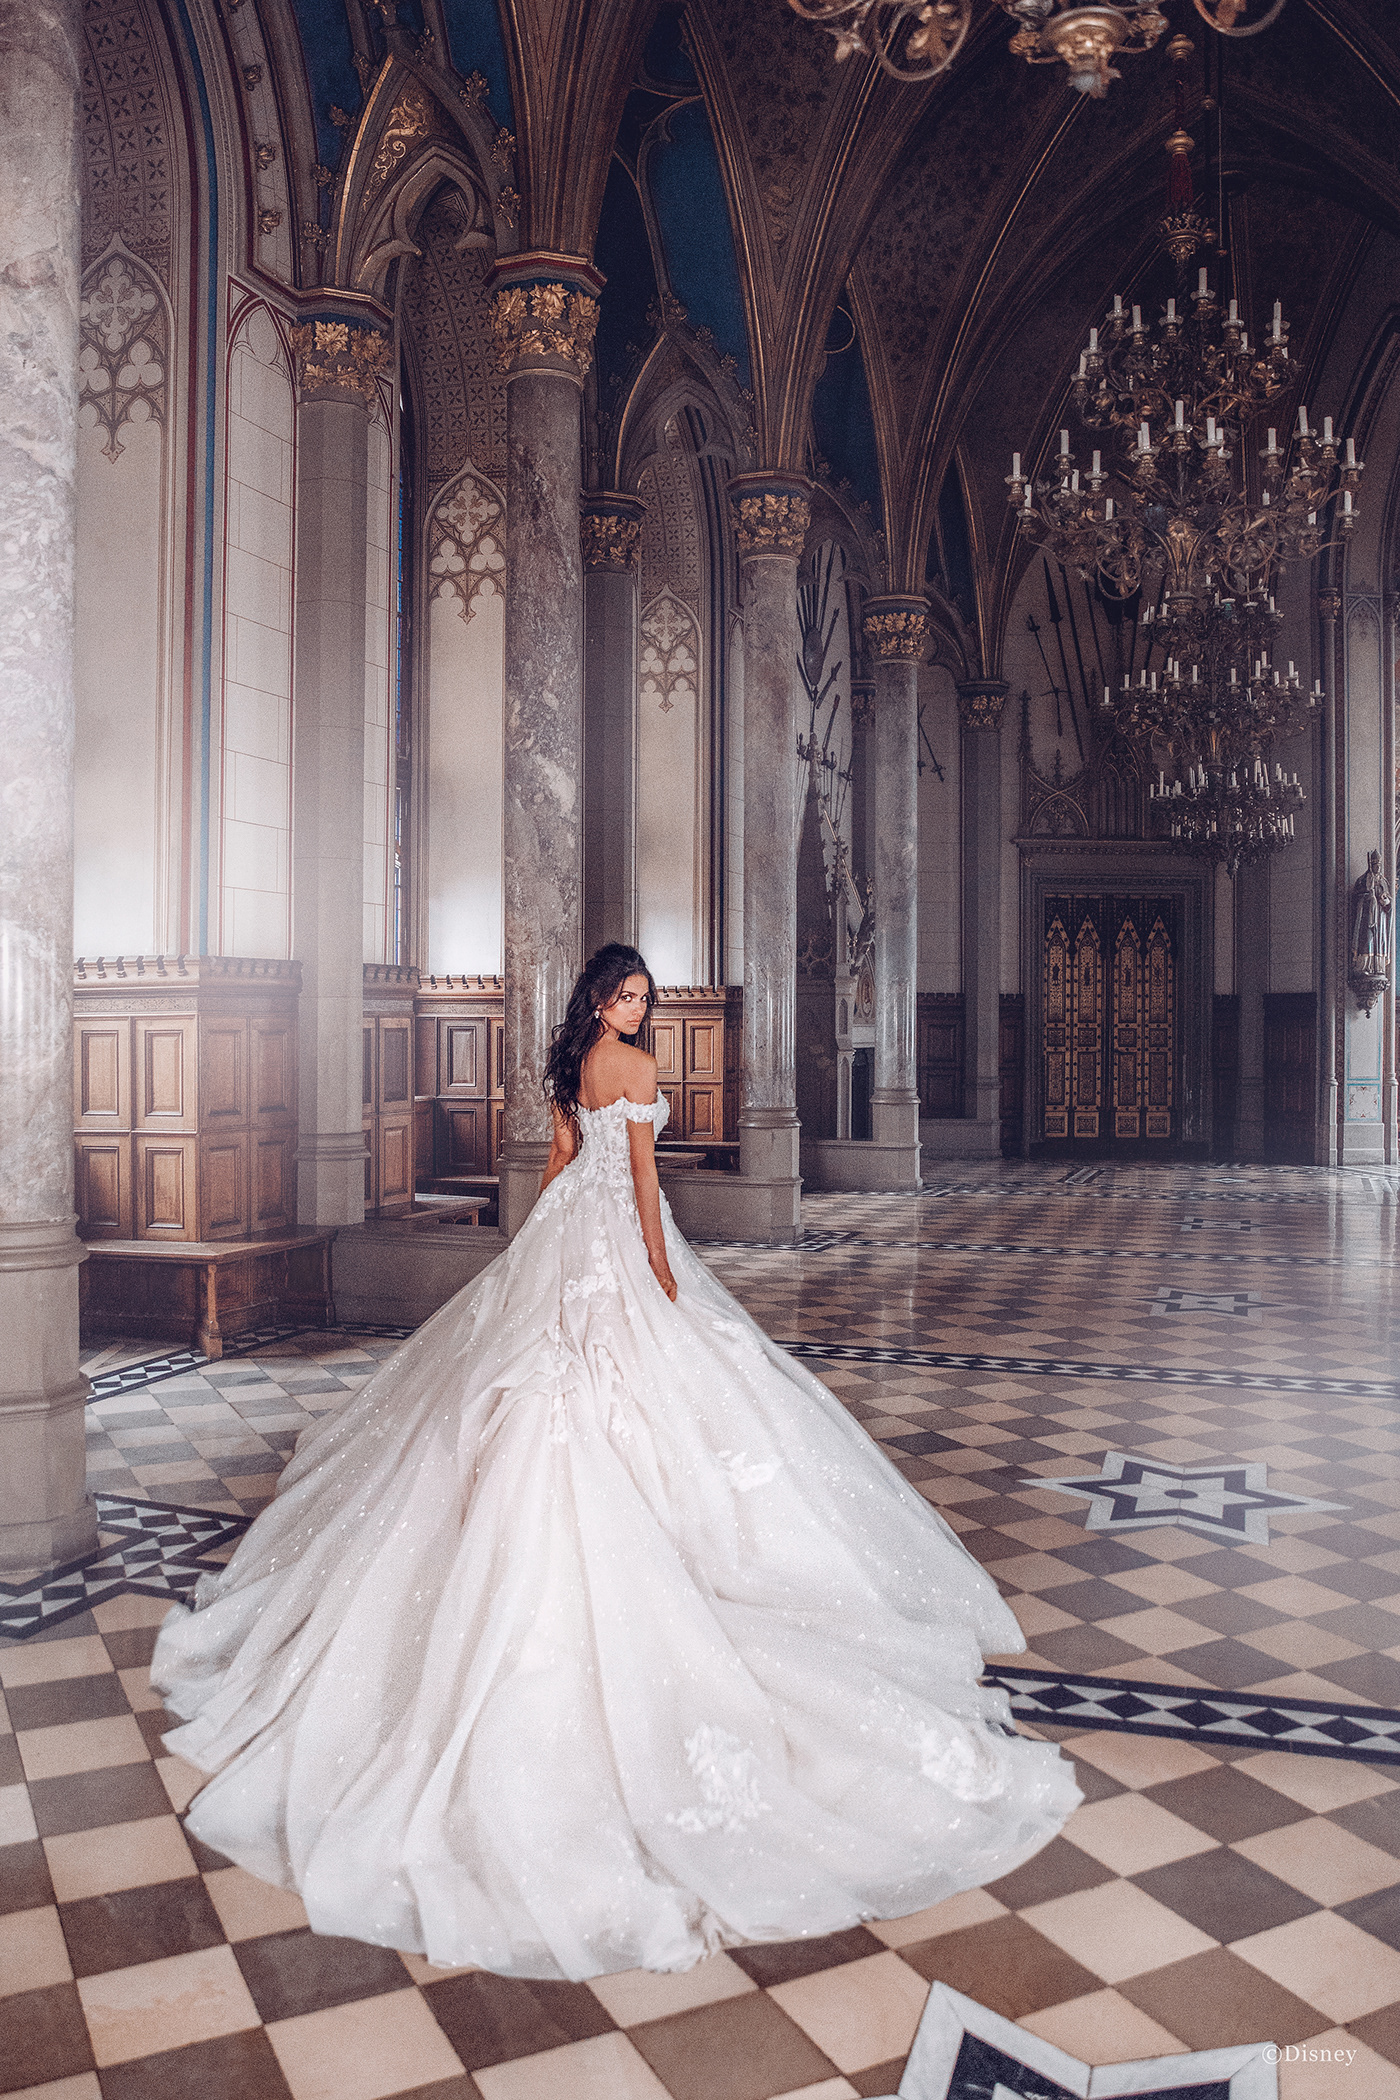 Image may contain: wedding dress, indoor and bride